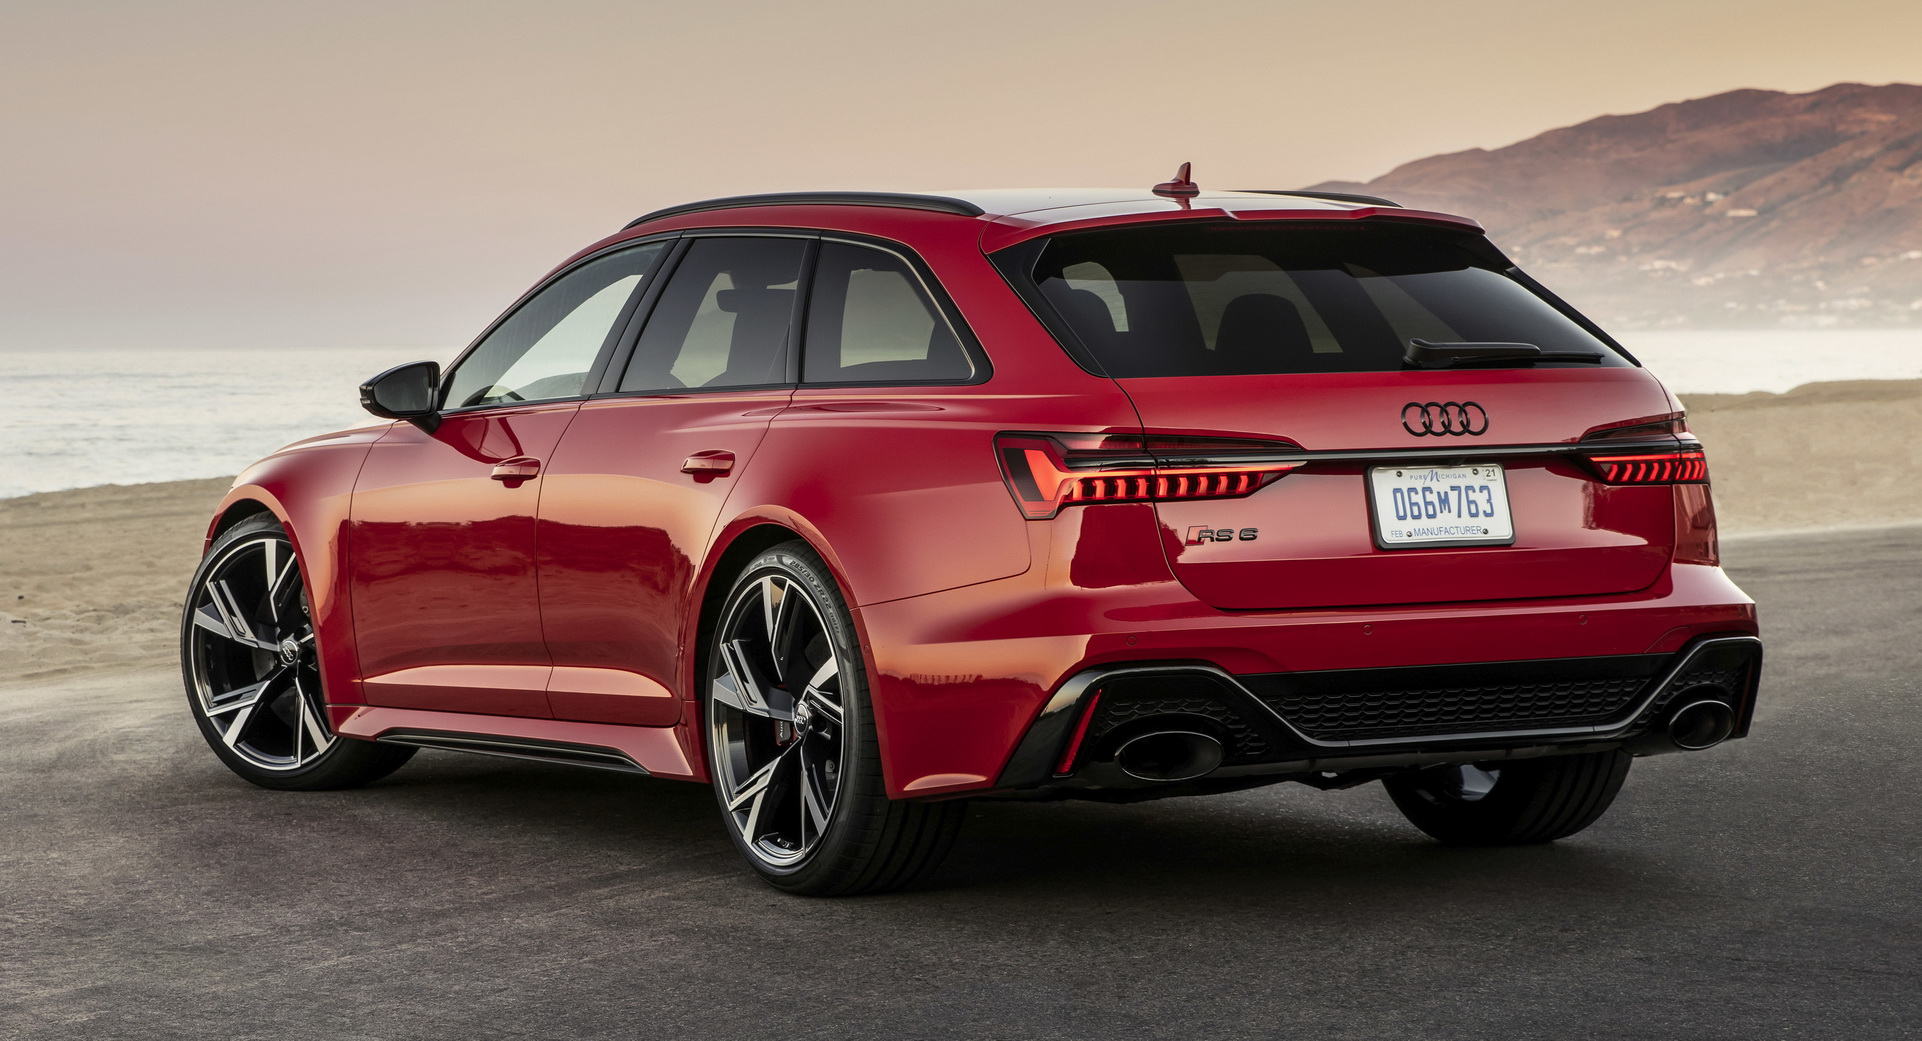 2020 audi rs6 avant review: one car to rule them all